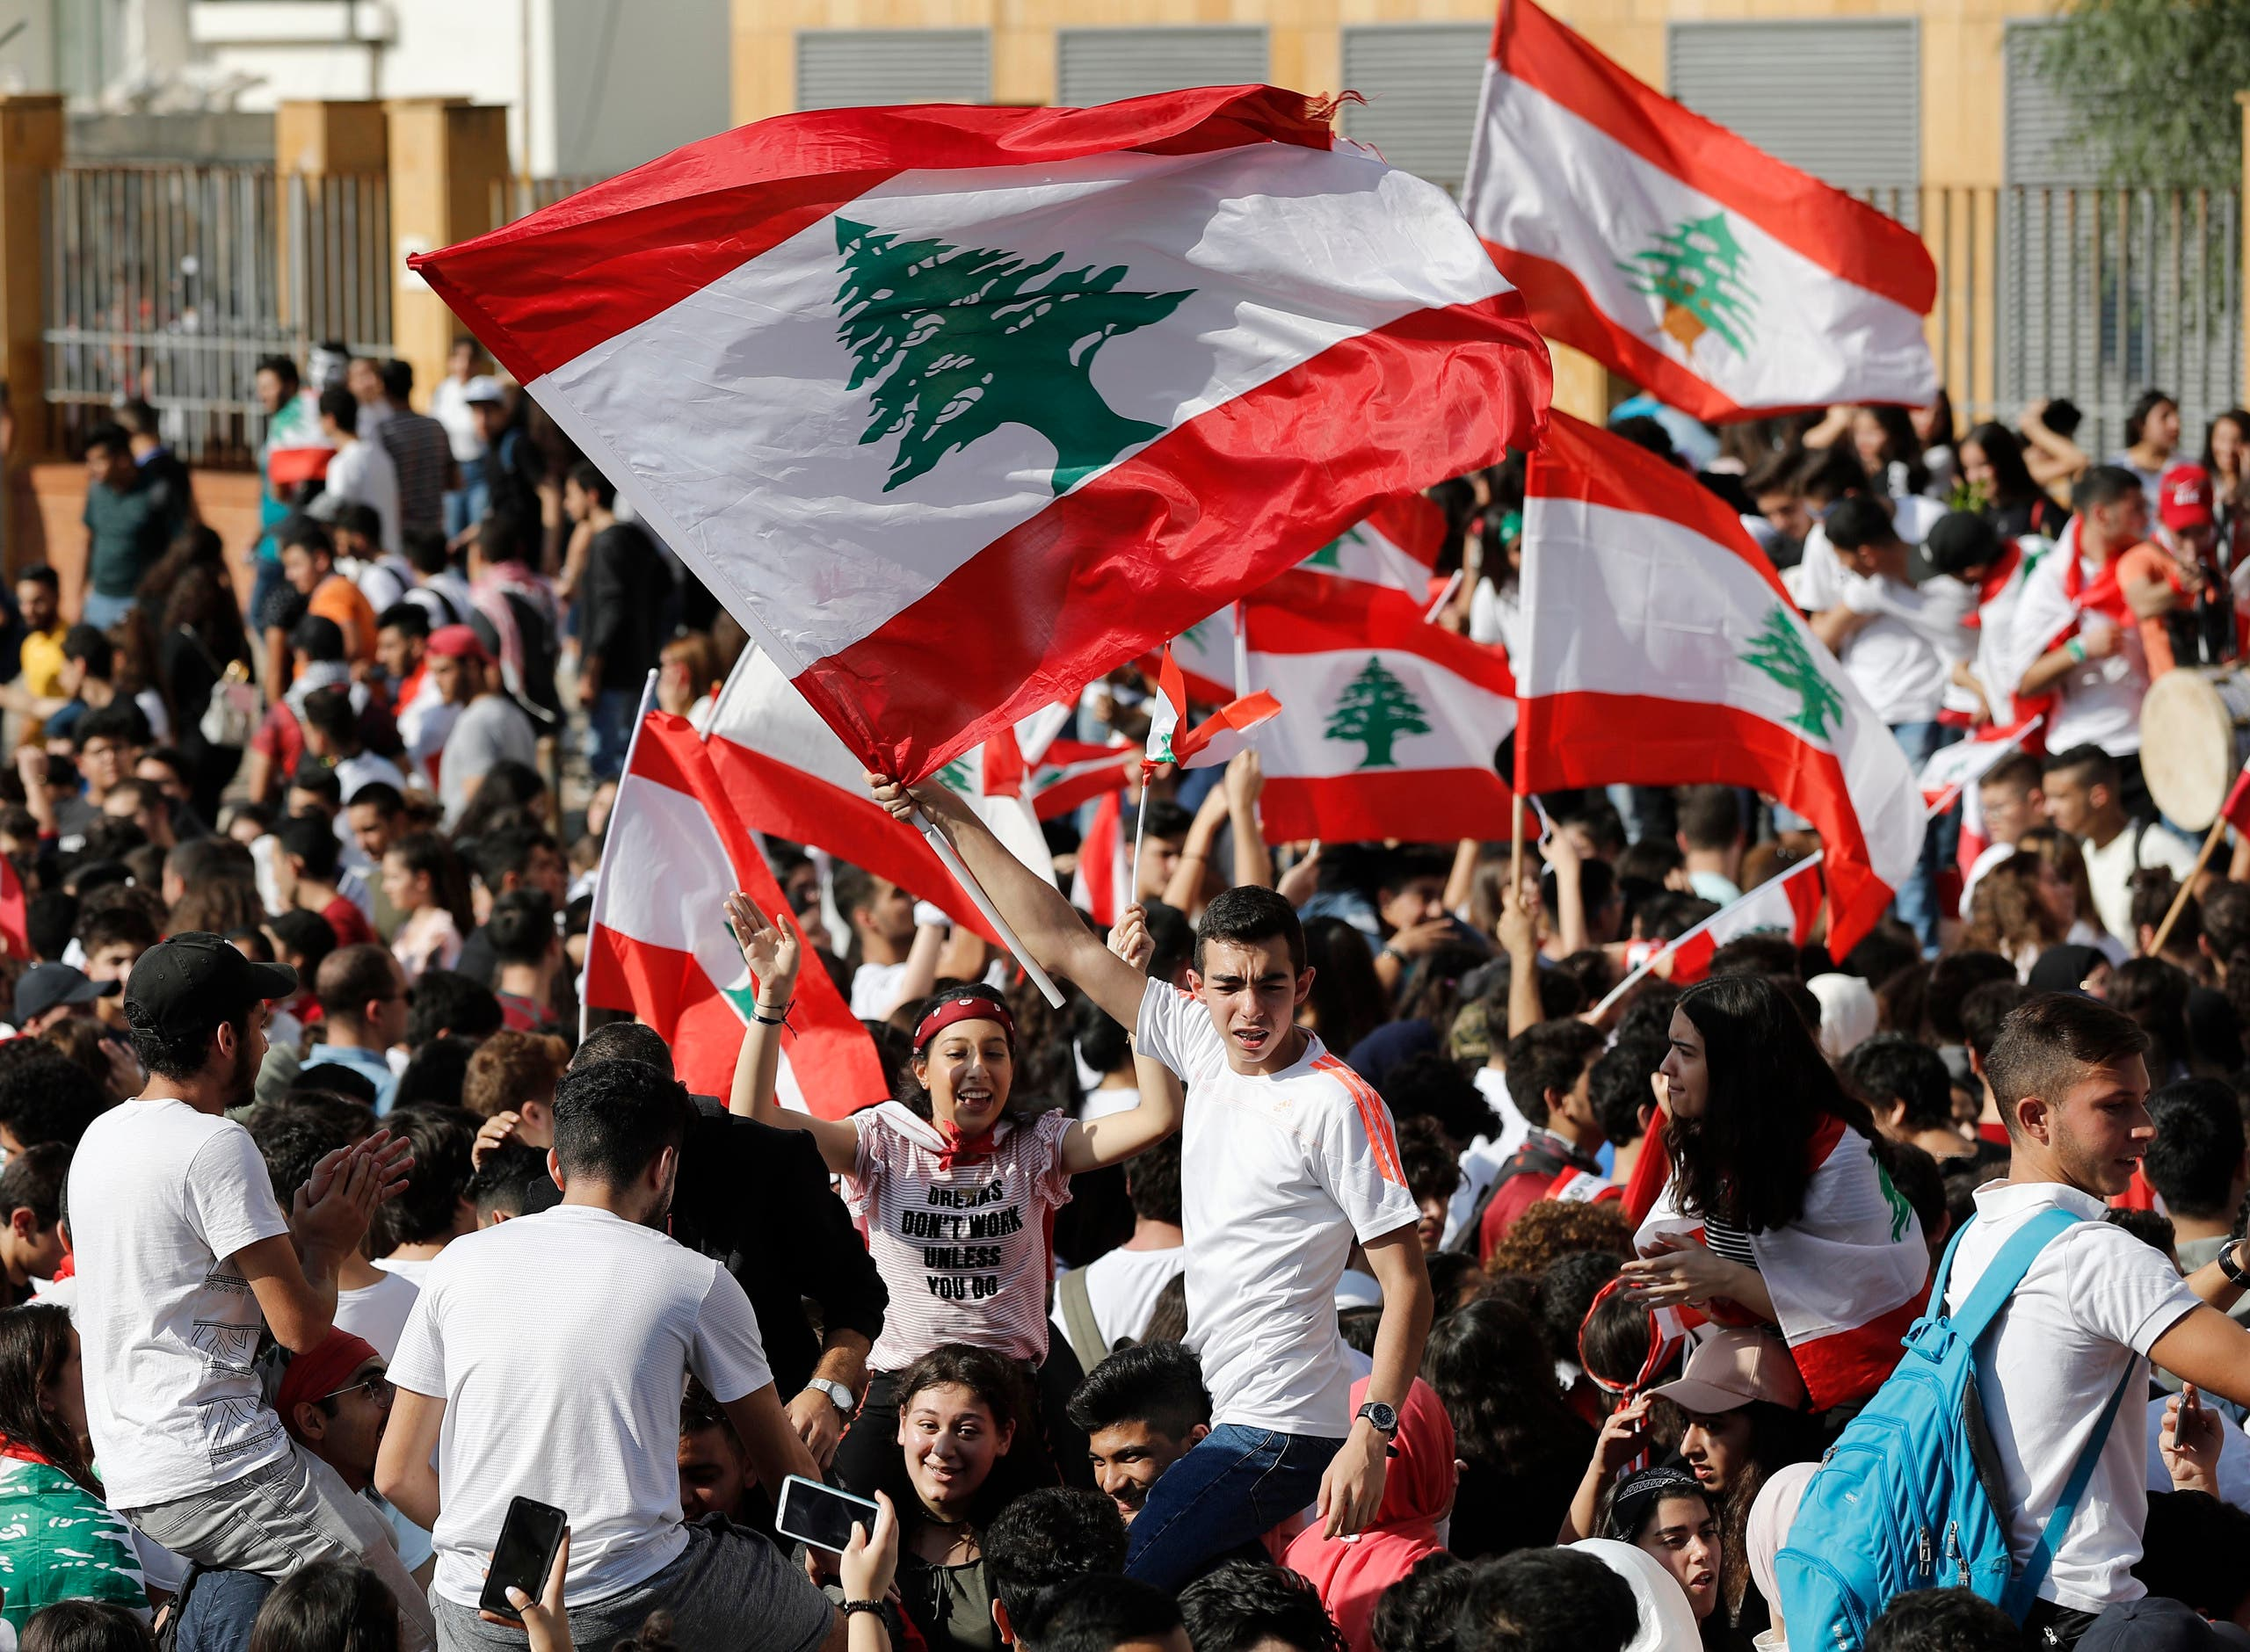 Student protesters wave their national flags as they protest against the government in front of the education ministry in Beirut, Lebanon, Friday, Nov. 8, 2019. (File photo: AP)